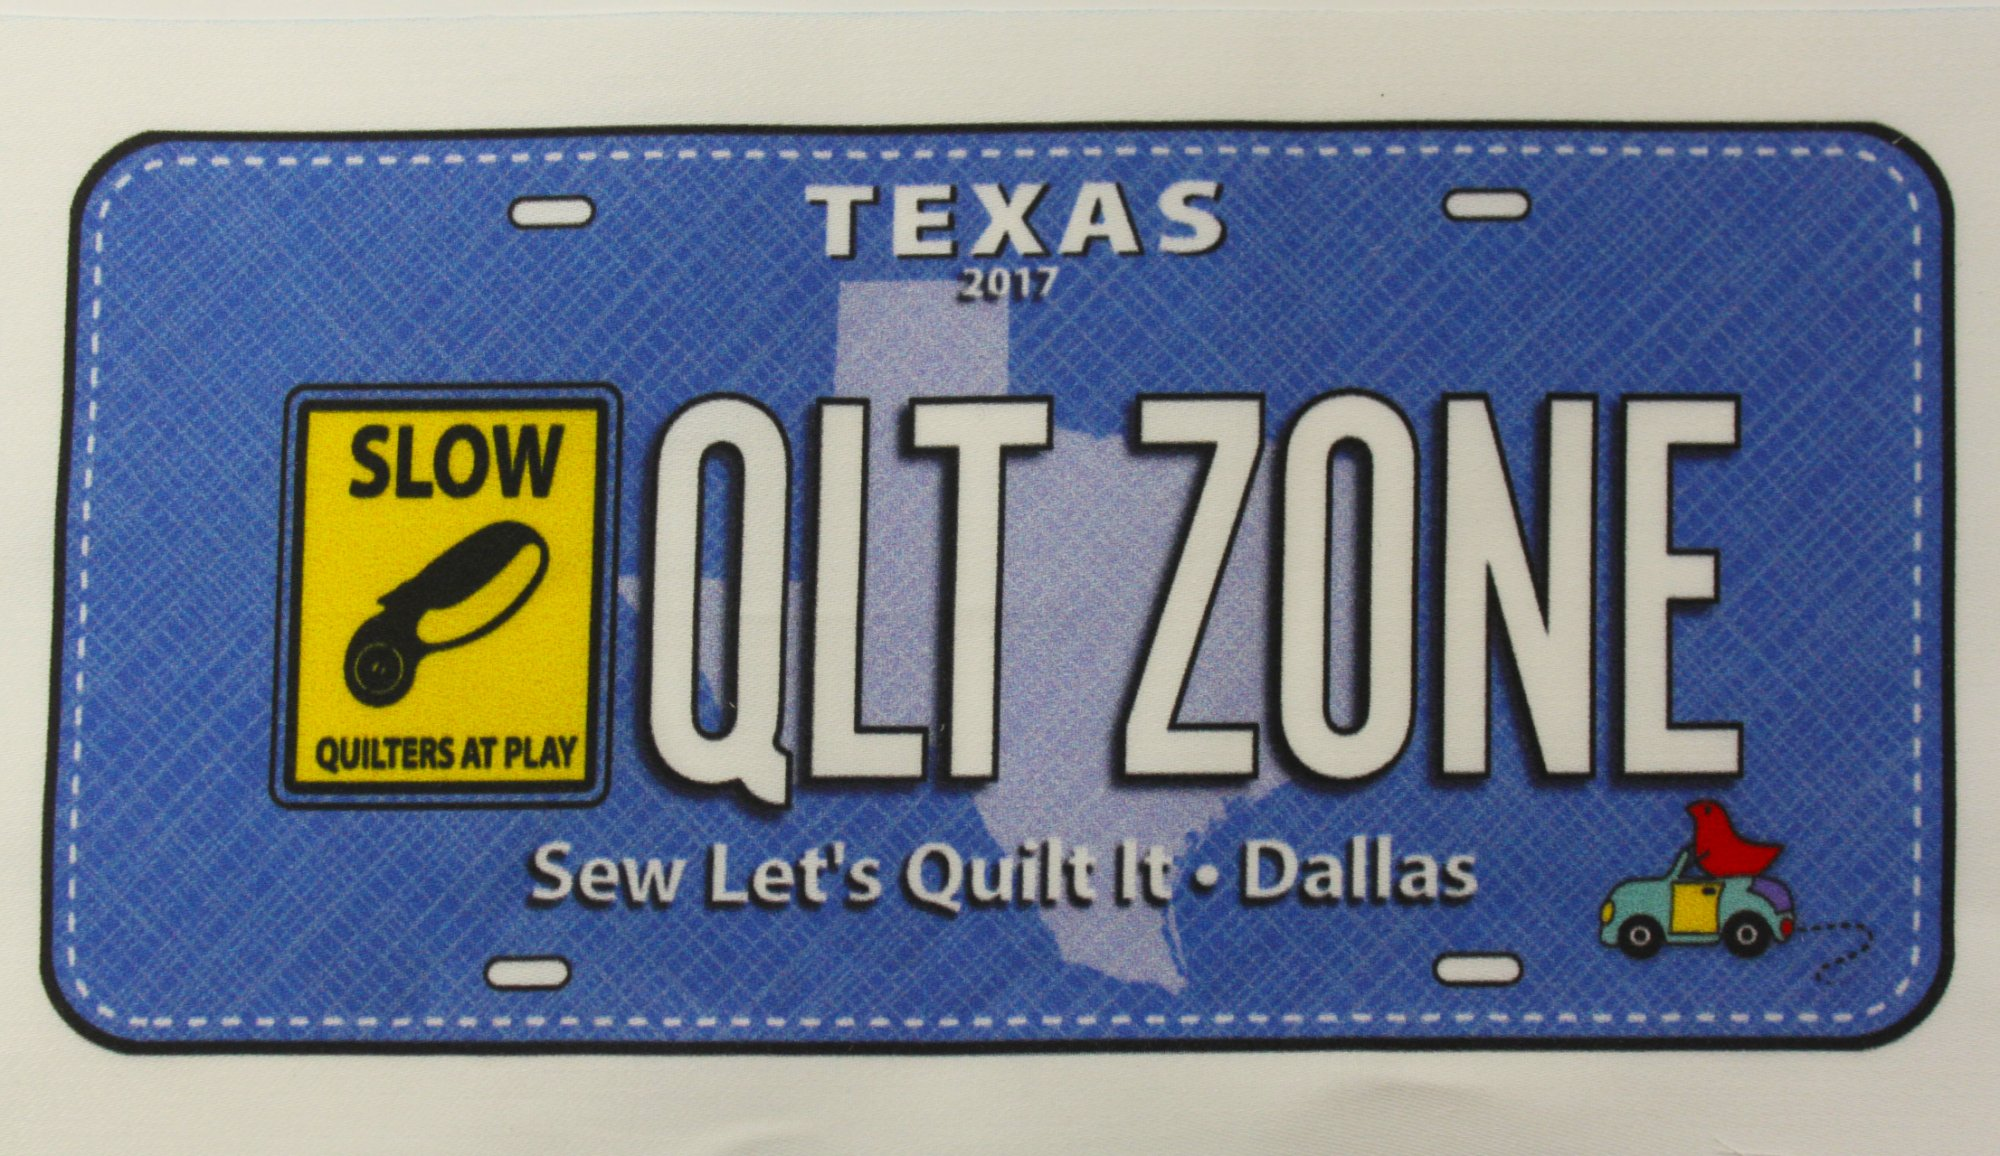 QLT Zone License Plate 2017